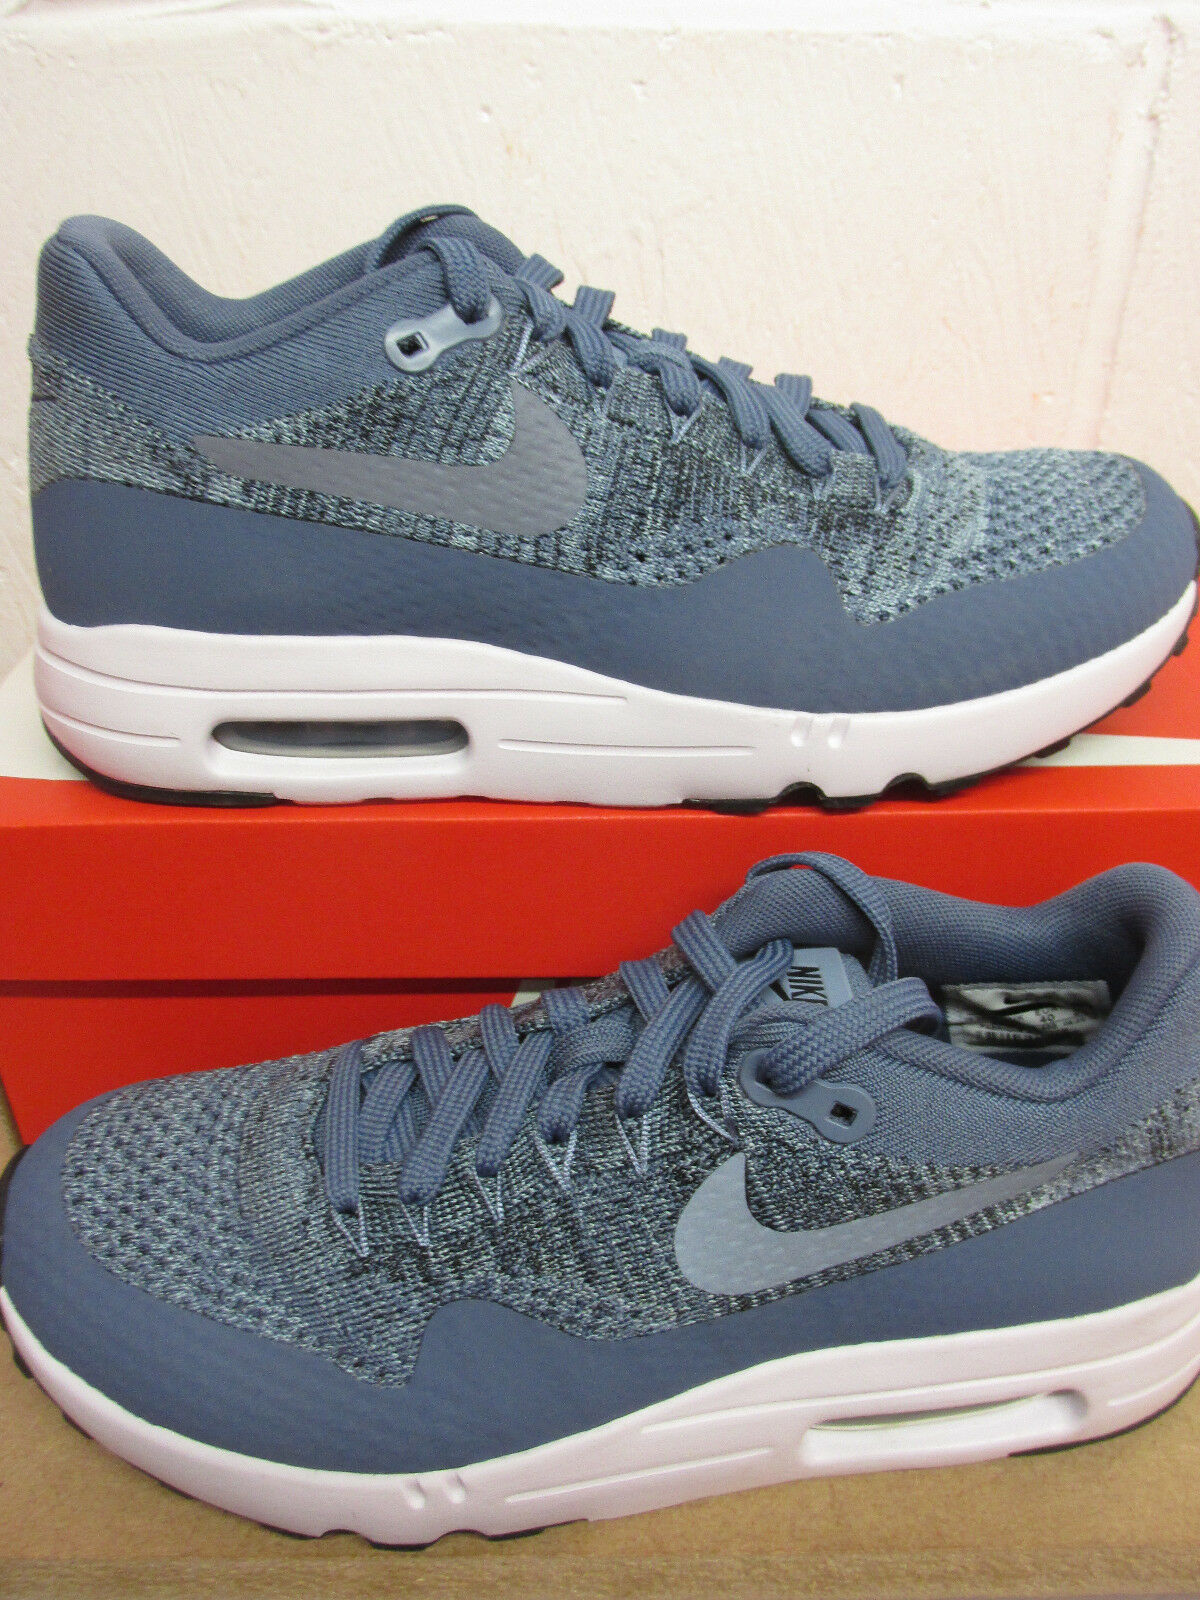 Nike Air Max 1 Ultra 2.0 Flyknit Mens Running Trainers 875942 400 Sneakers Shoes